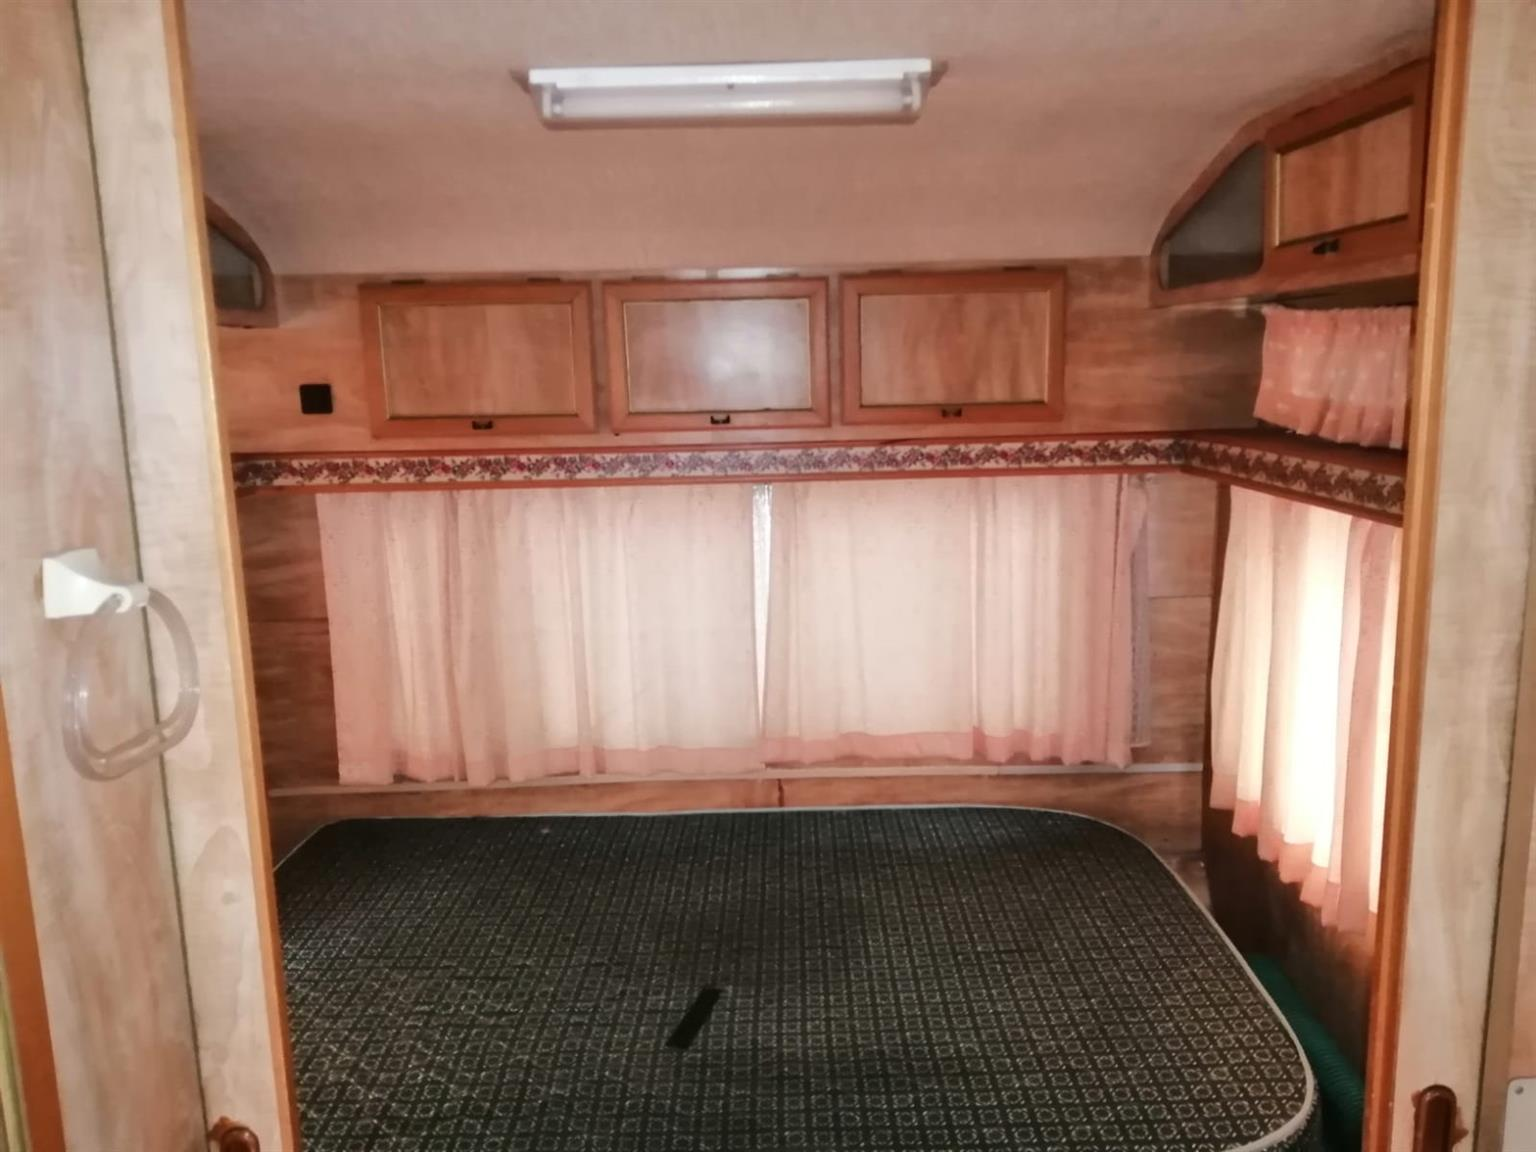 Caravan for sale in good condition, year mode 1987,it has got no problem,